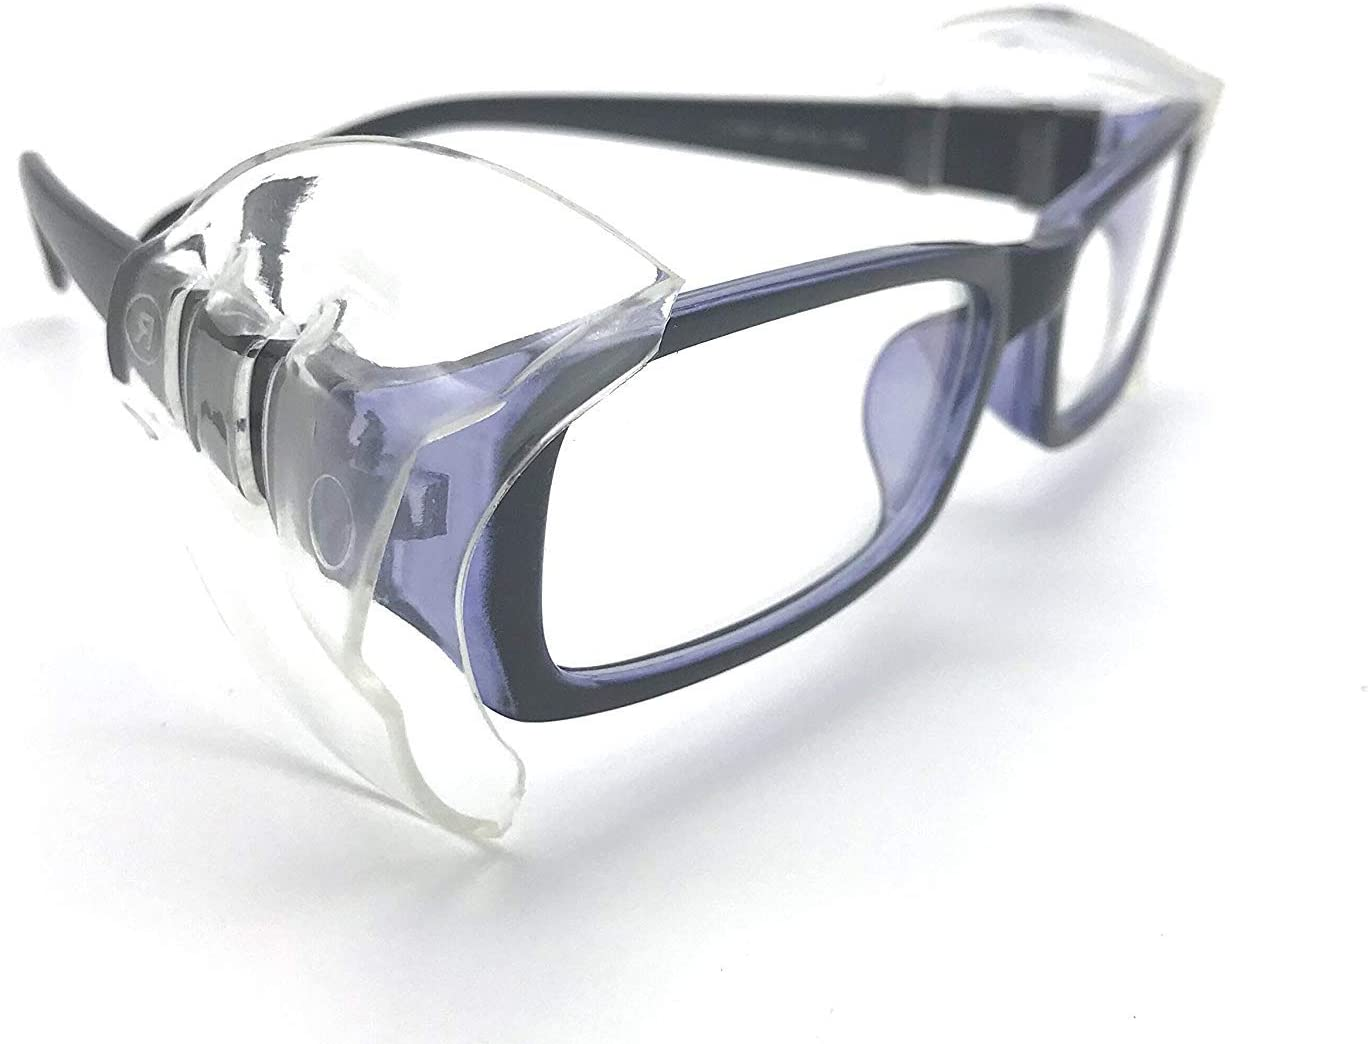 CHoppyWAVE 1 Pair Safety Eye Glasses Side for Safety Glasses Fits Small to Medium Eyeglasses Flexible Clear Universal Flexible Goggles Protector